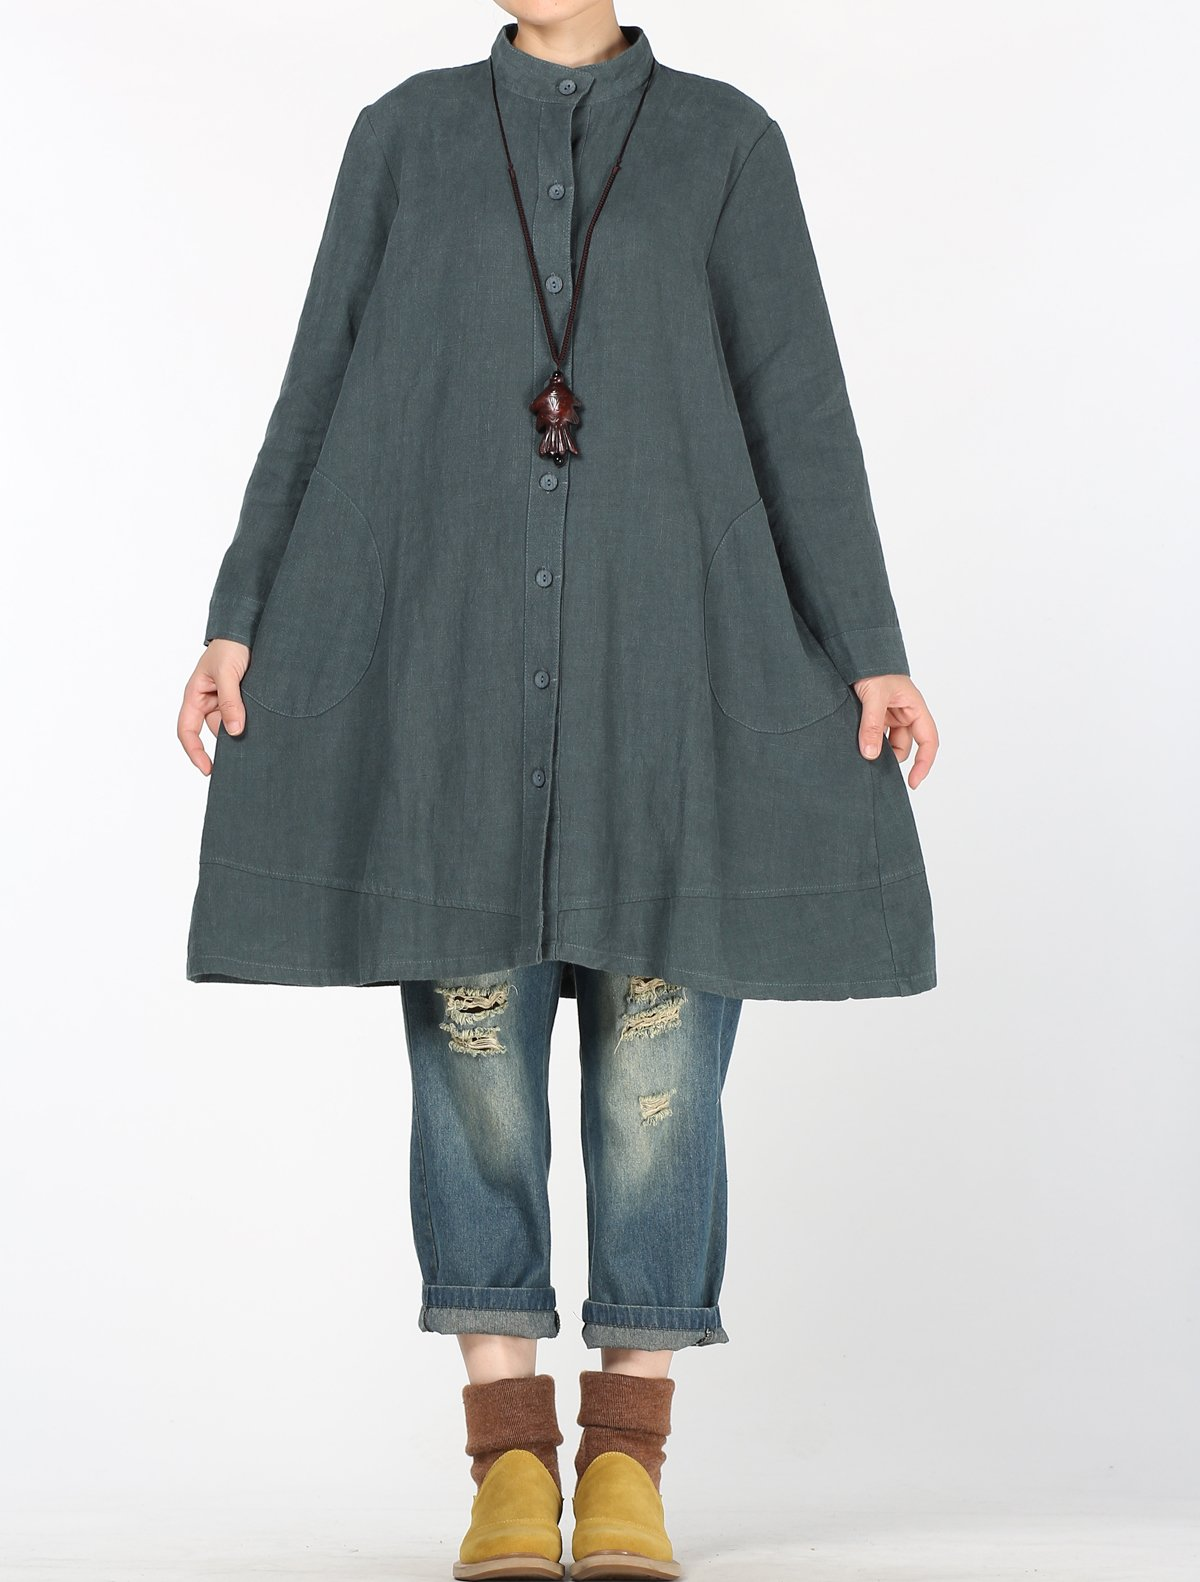 Mordenmiss Women's Cotton Linen Full Front Buttons Jacket Outfit with Pockets Style 1 L Dark Green by Mordenmiss (Image #2)